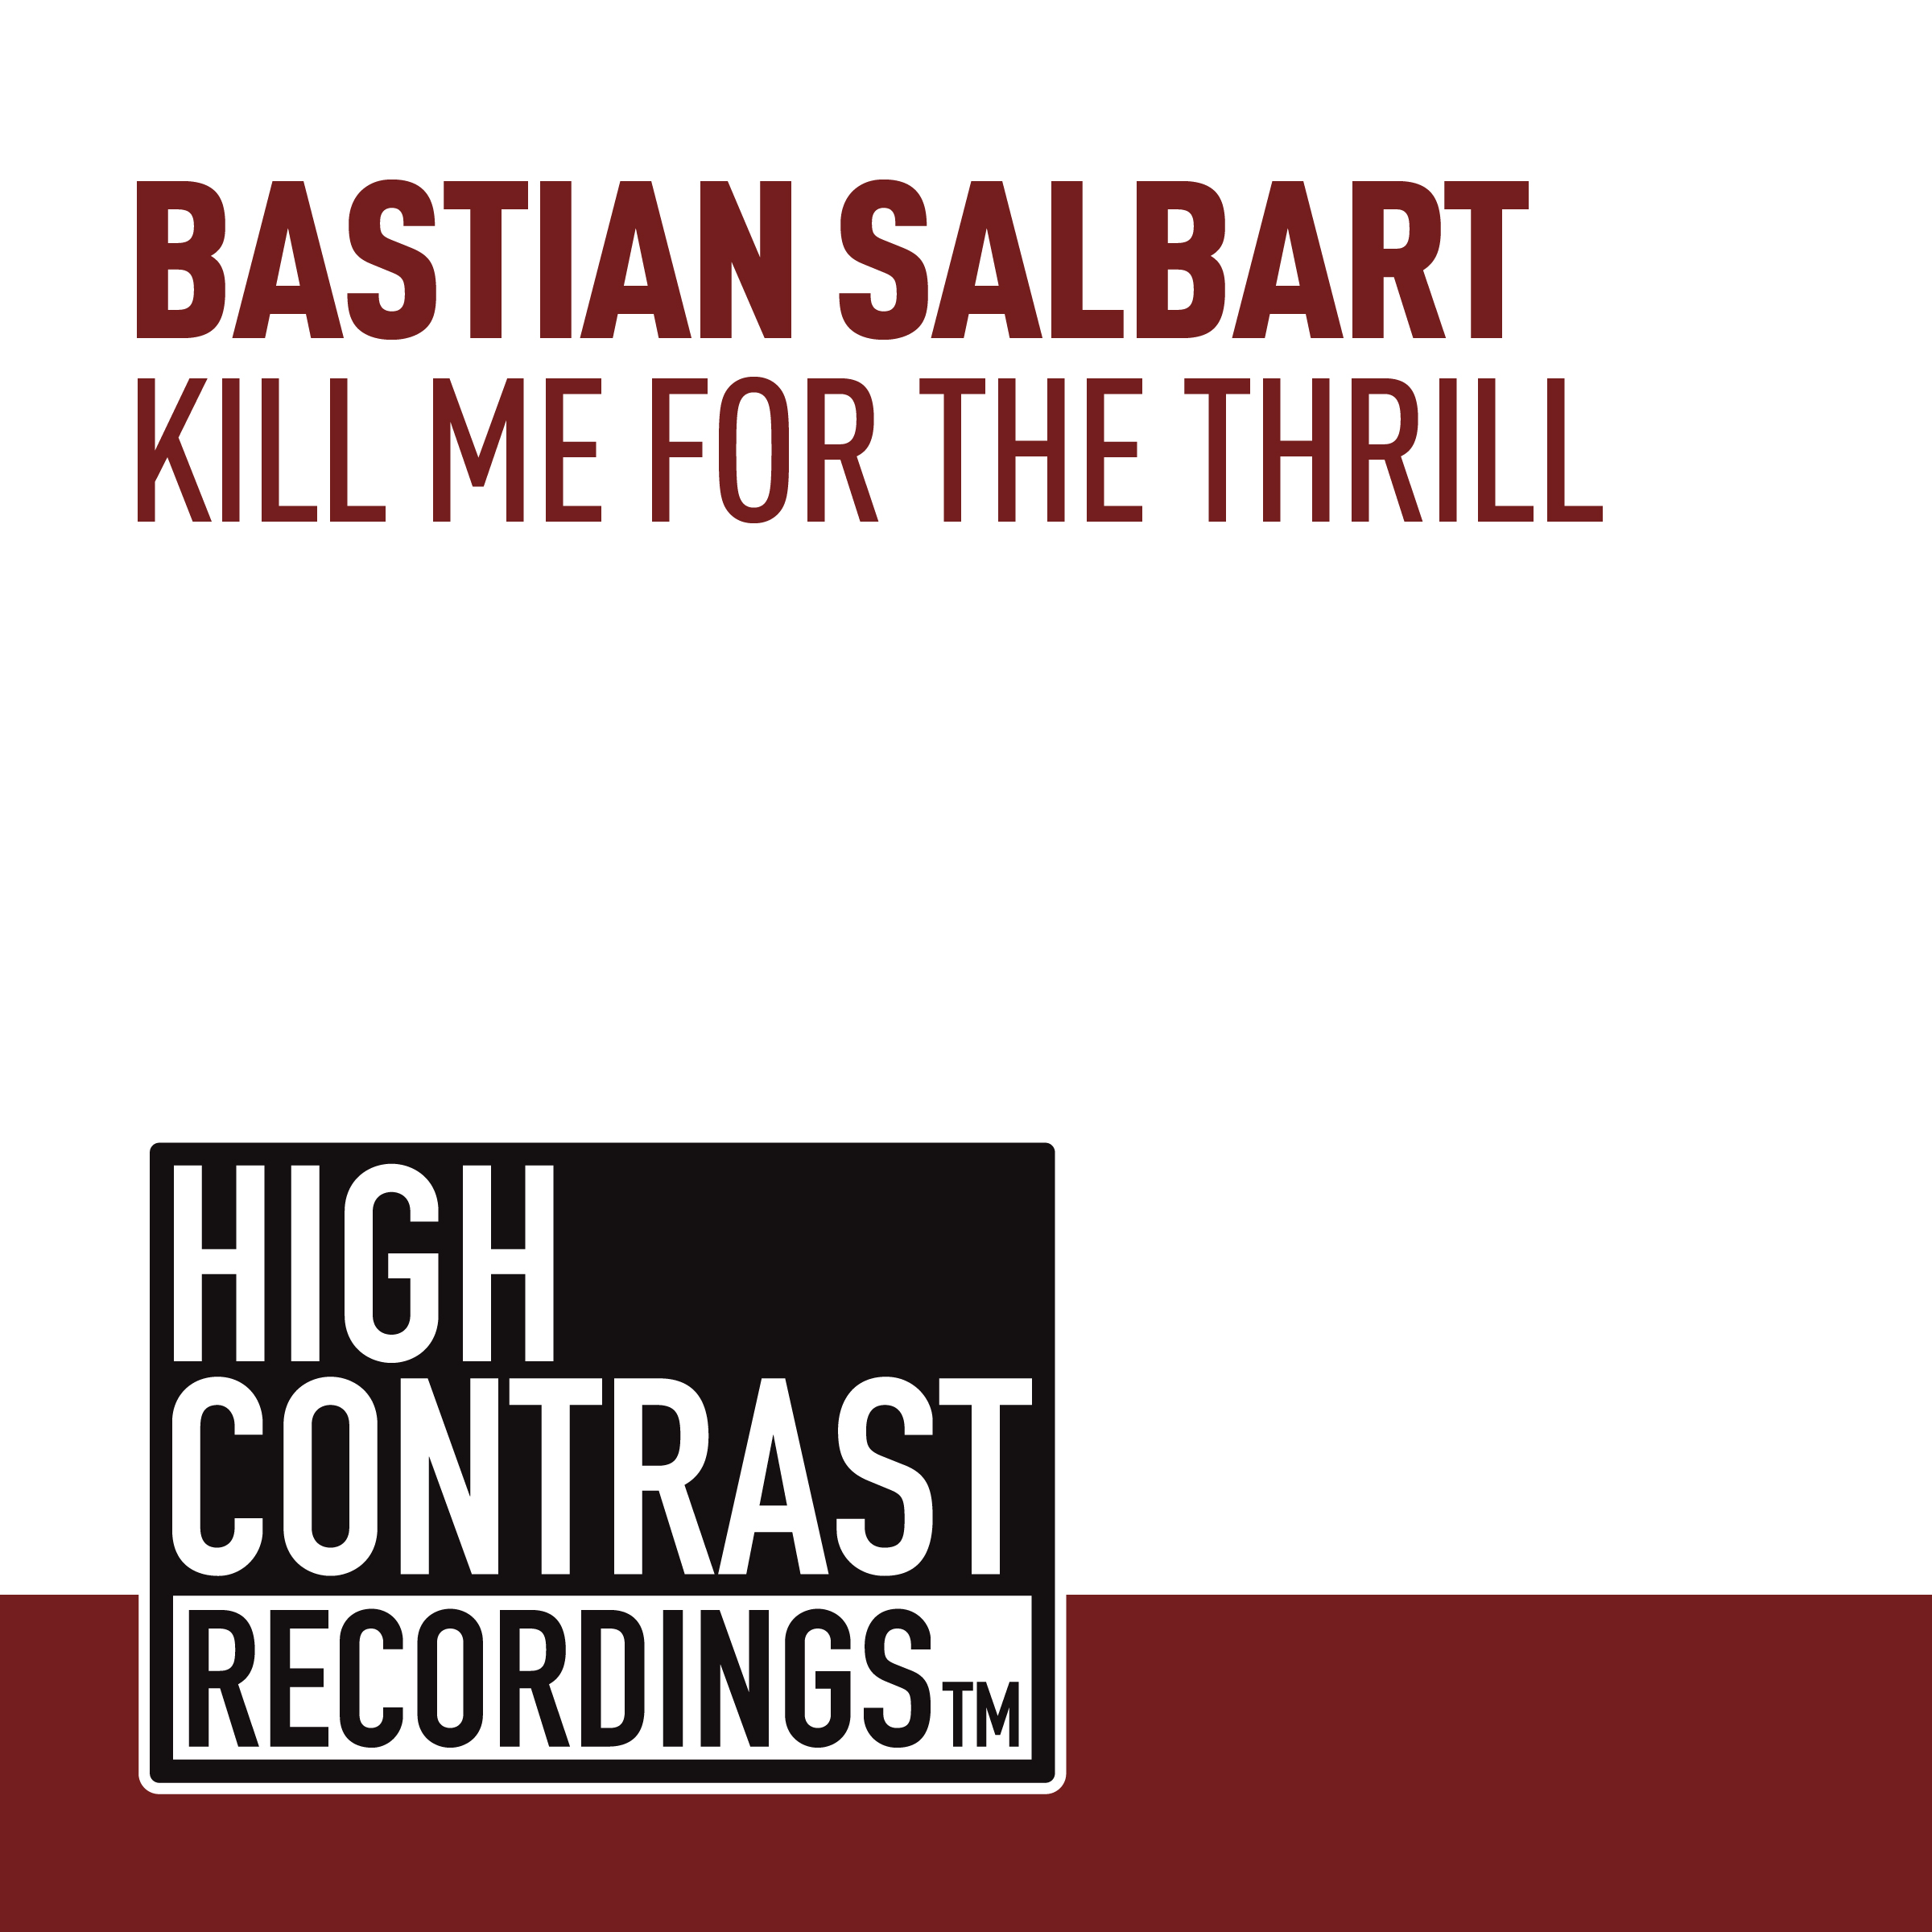 HCR256_Bastian Salbart - Kill Me For The Thrill 2400x2400